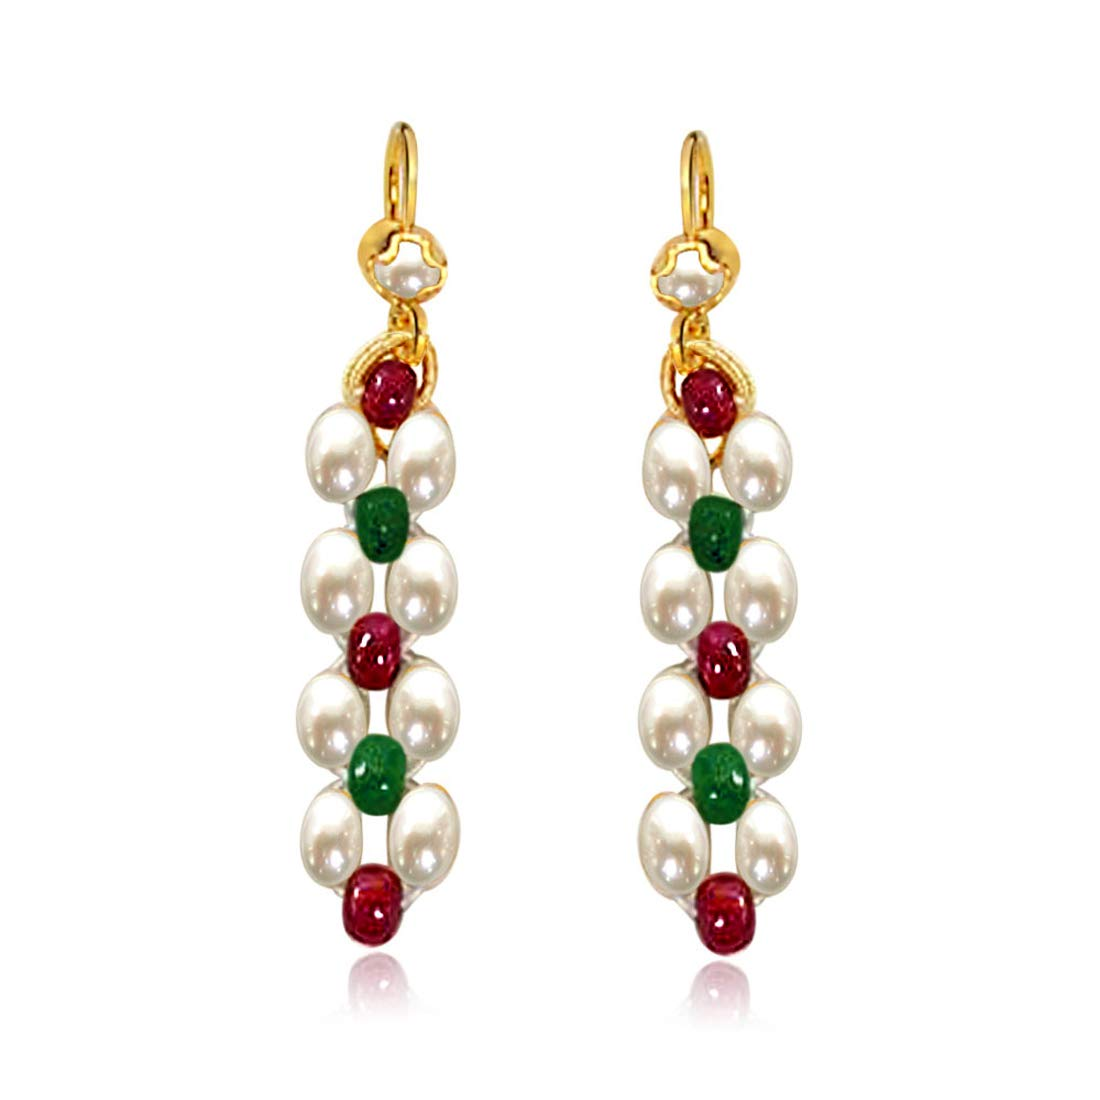 Dangling Rice Pearl, Ruby & Emerald Beads Earrings for Women (SE124)